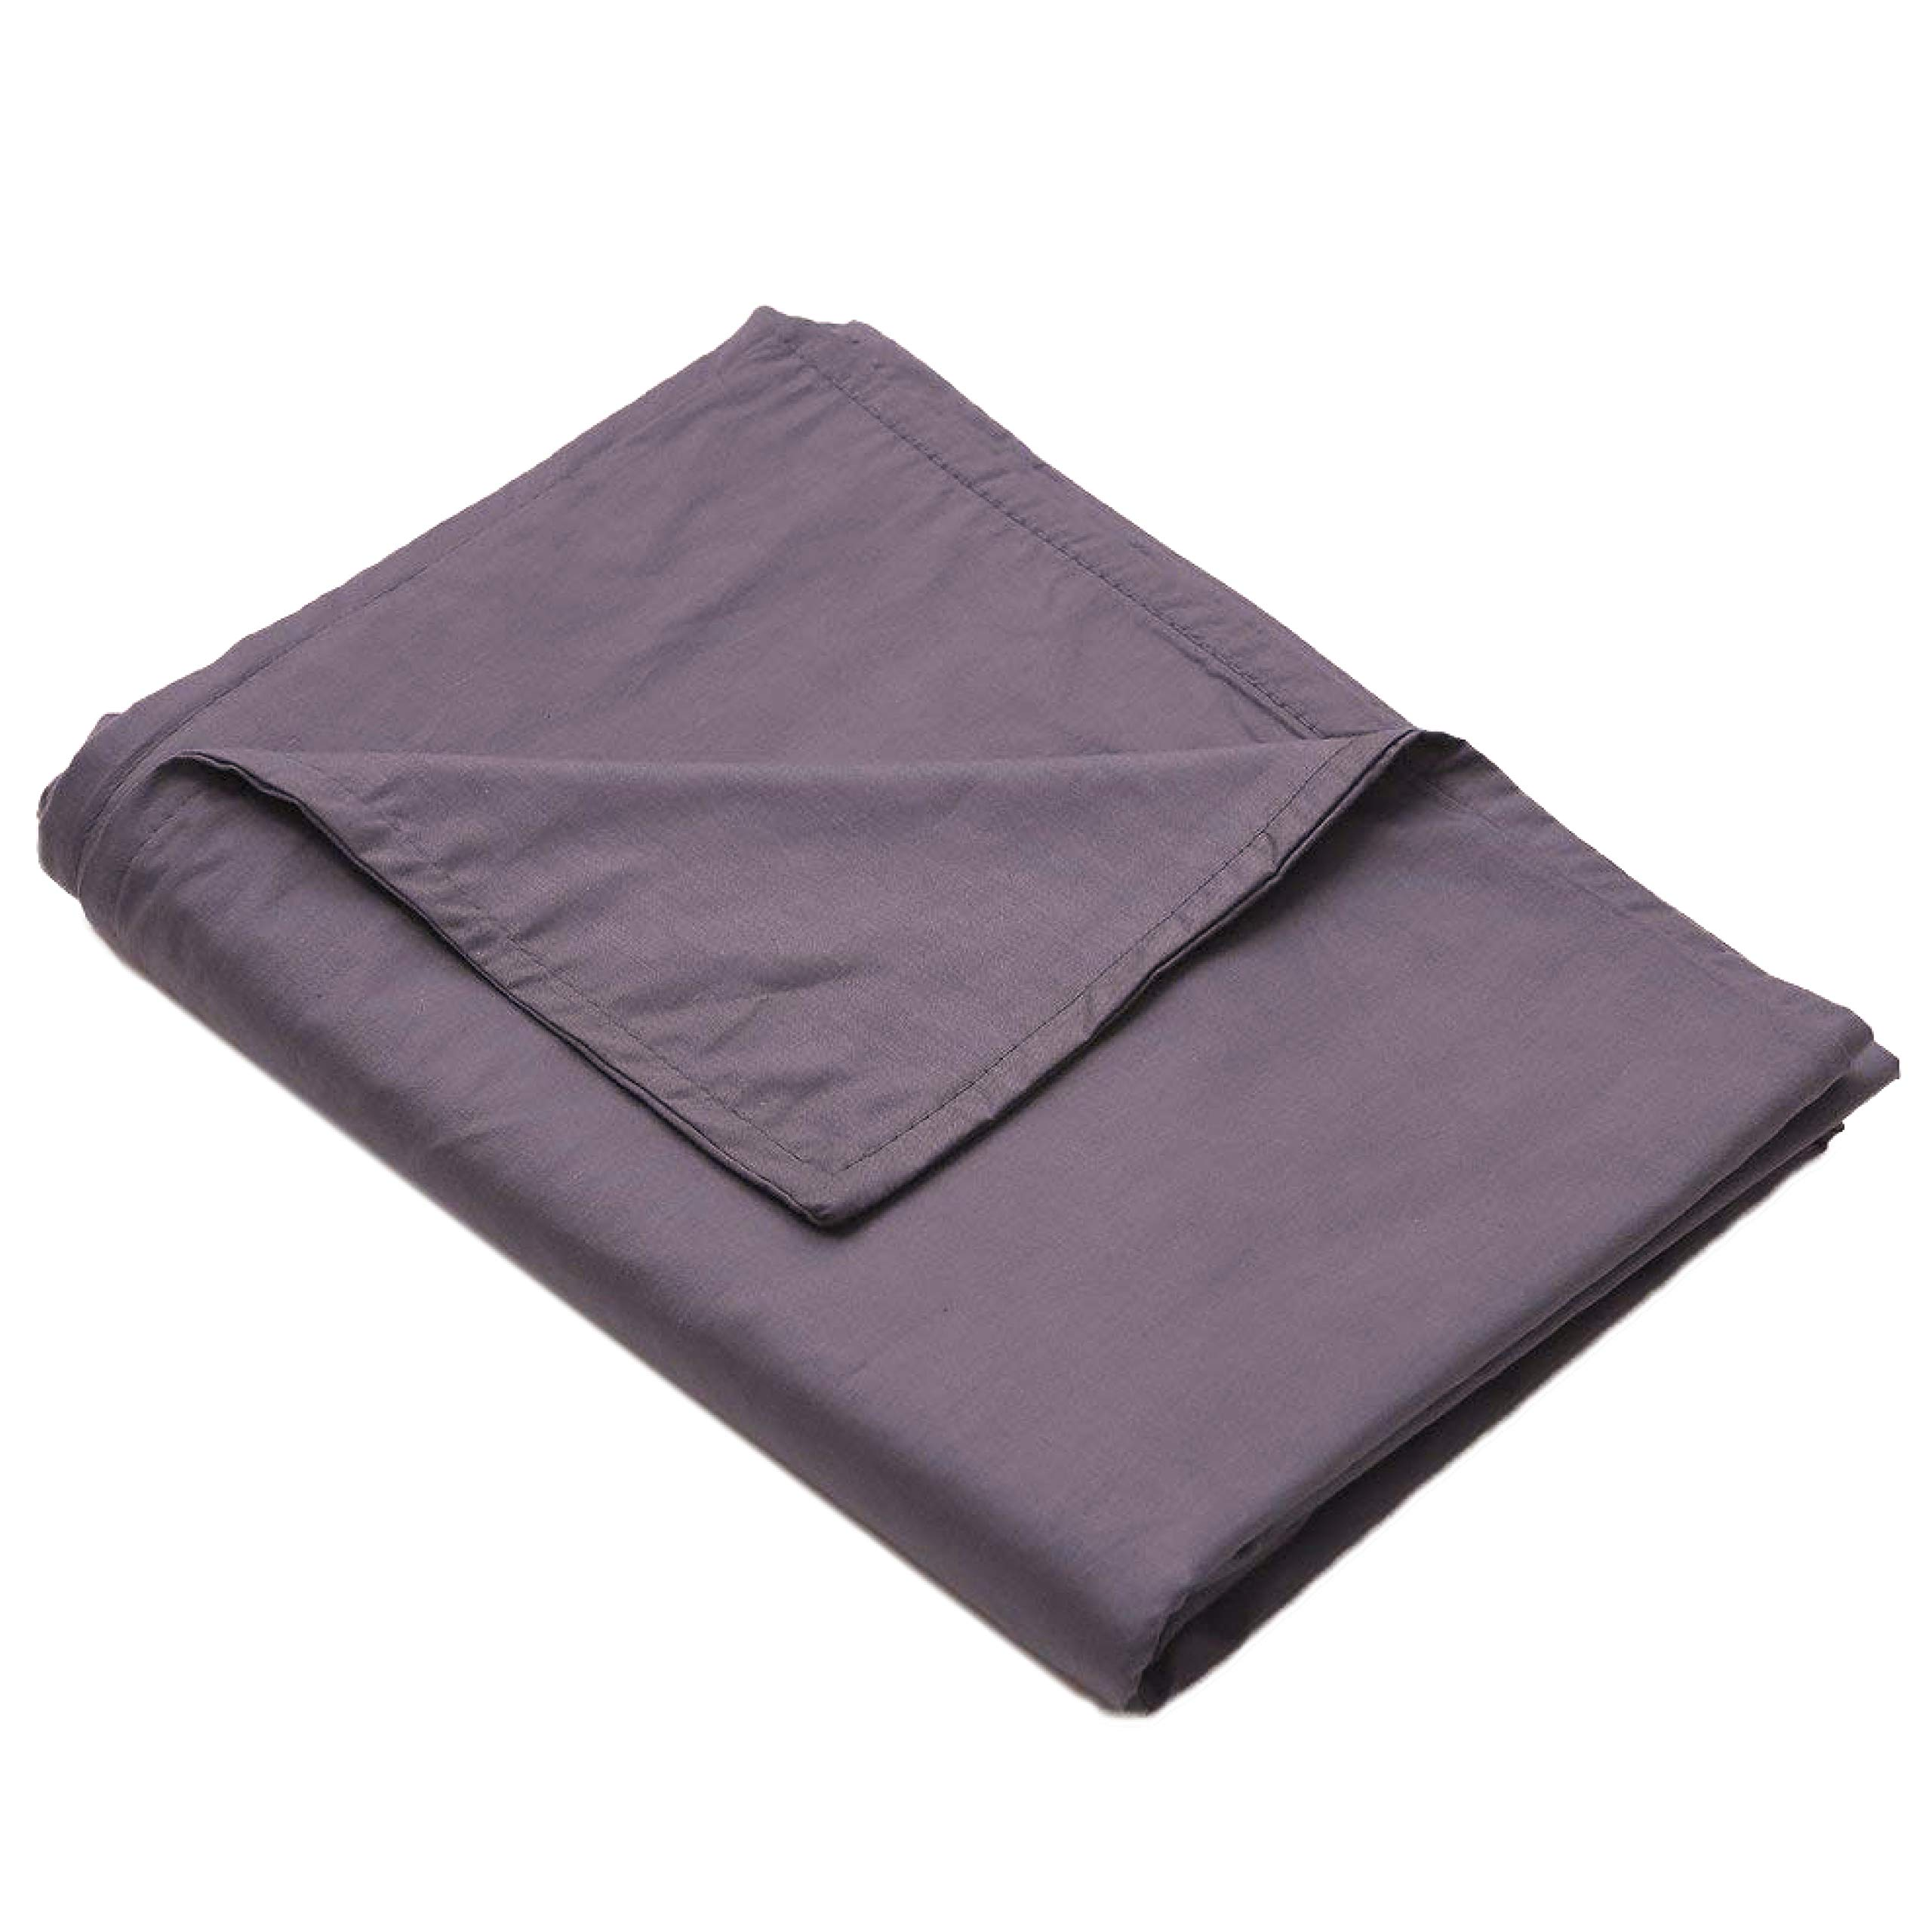 Loving Snuggles Weighted Blanket Cover | Cooling Cotton Twin Size Tie Duvet to Pair with Heavy Gravity Comforter for Adults & Kids with Anxiety, Insomnia, Autism or Stress - 48x72 Inches